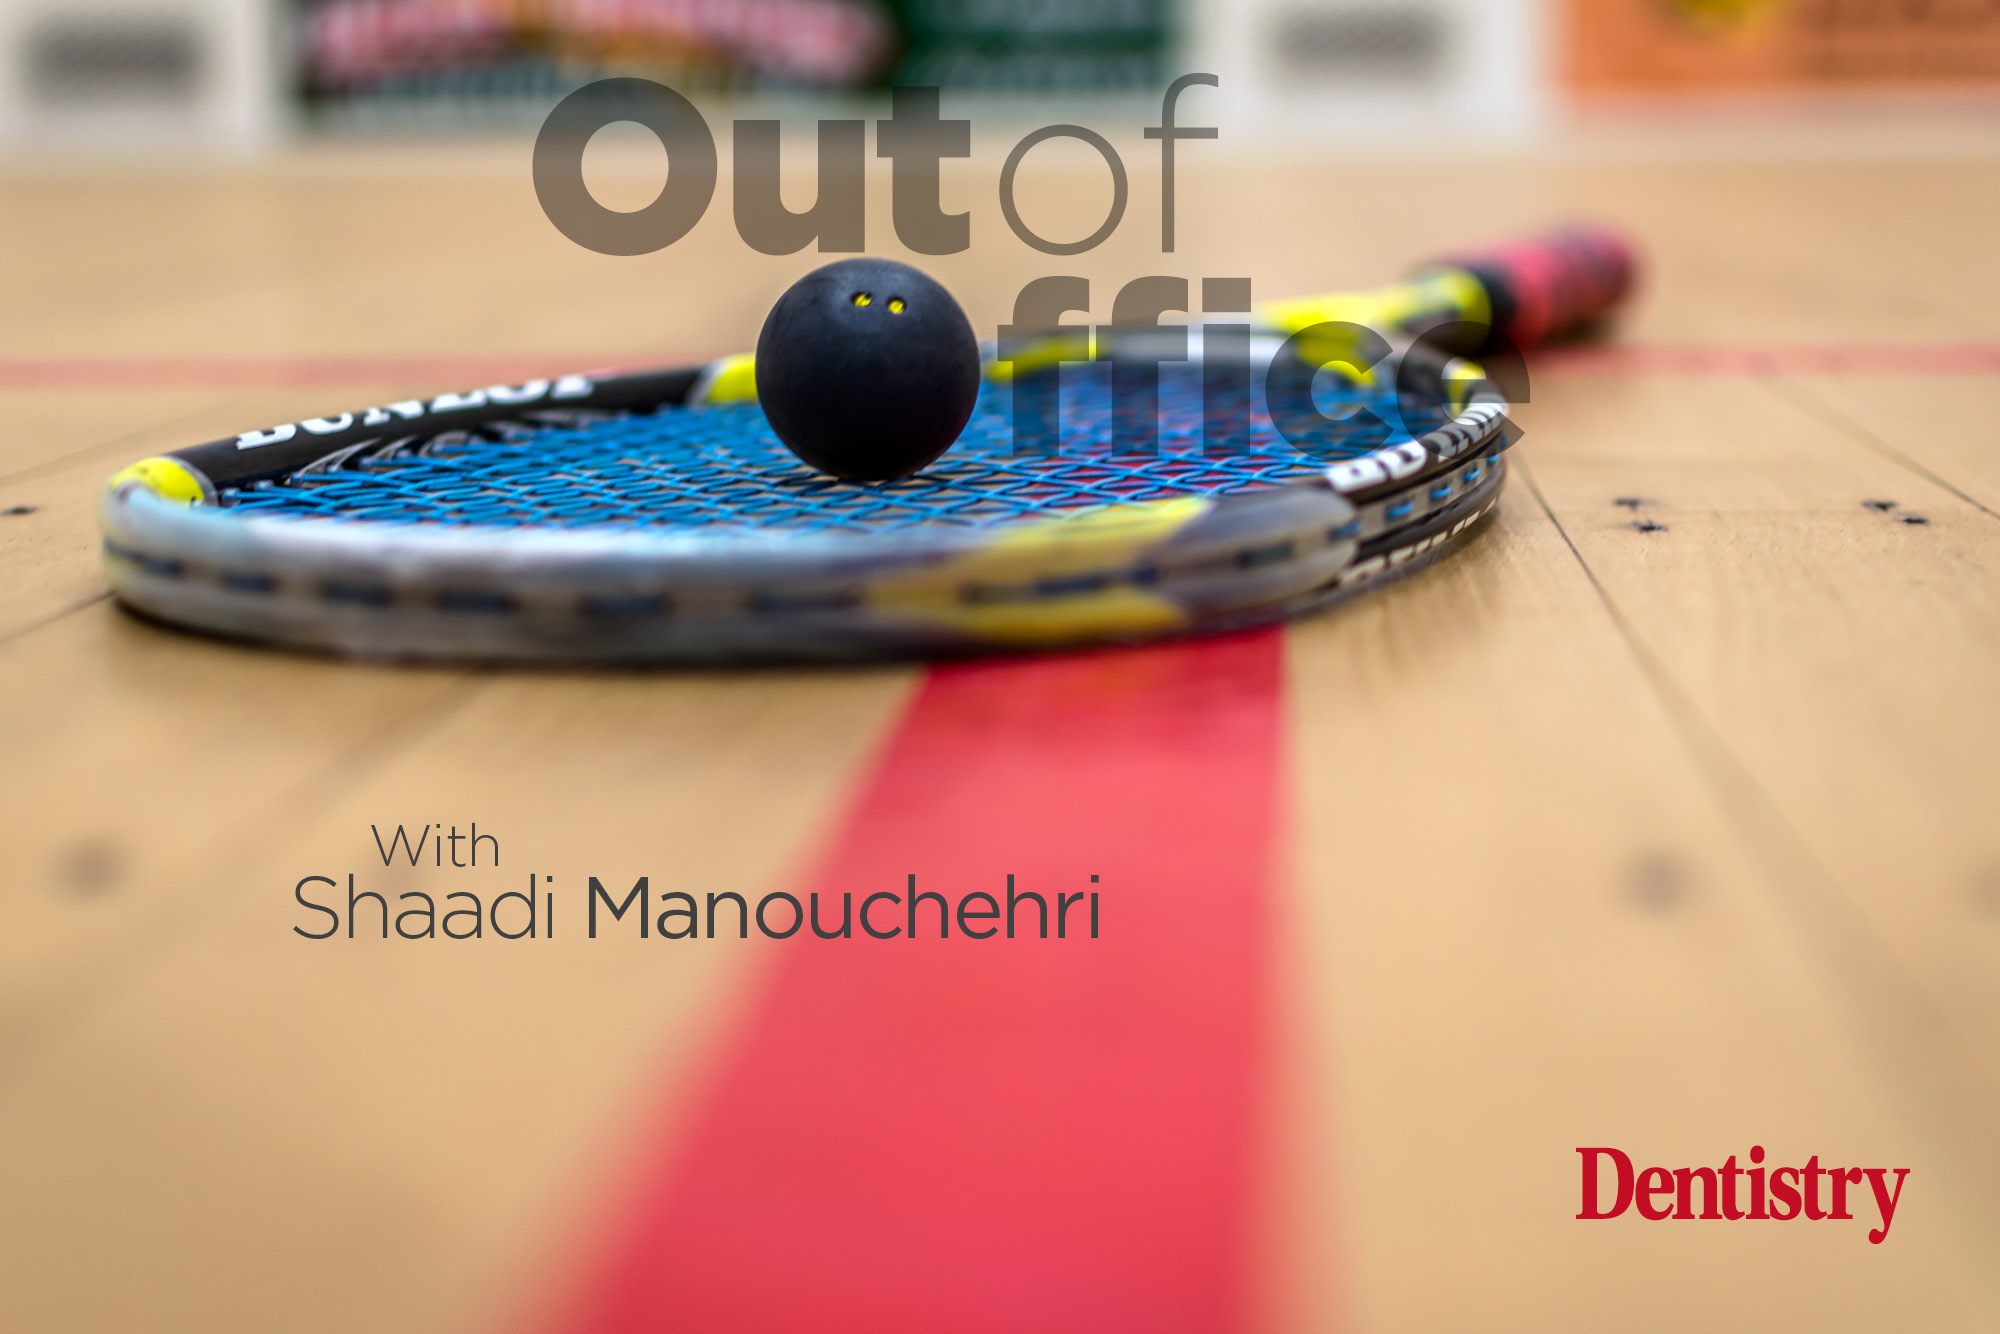 Shaadi Manouchehri talks about her love for grilled edamame beans and playing squash at an international level.